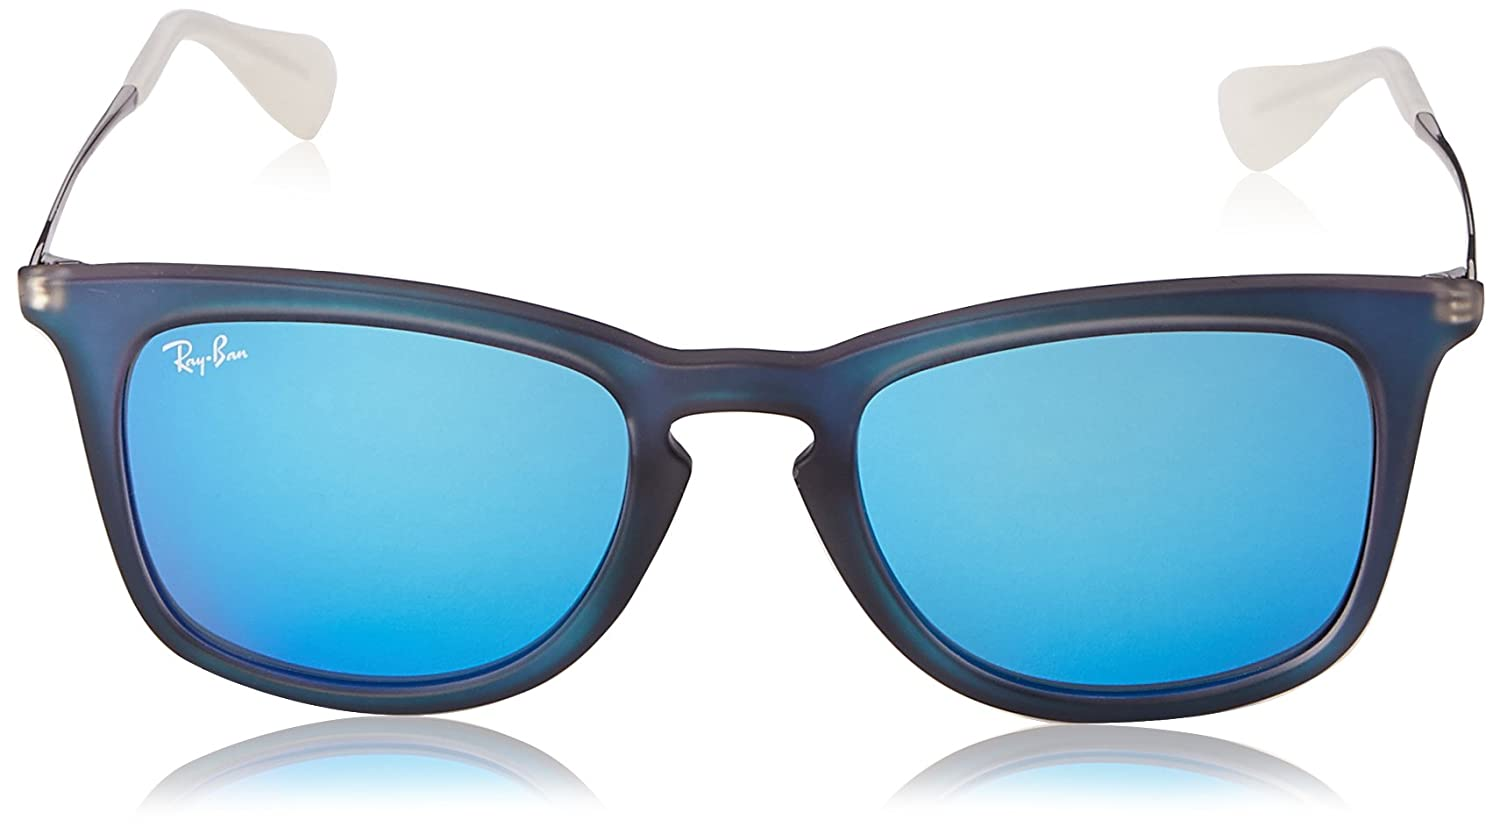 b2388db29d3 Amazon.com  Ray-Ban Men s Injected Man Sunglass Square